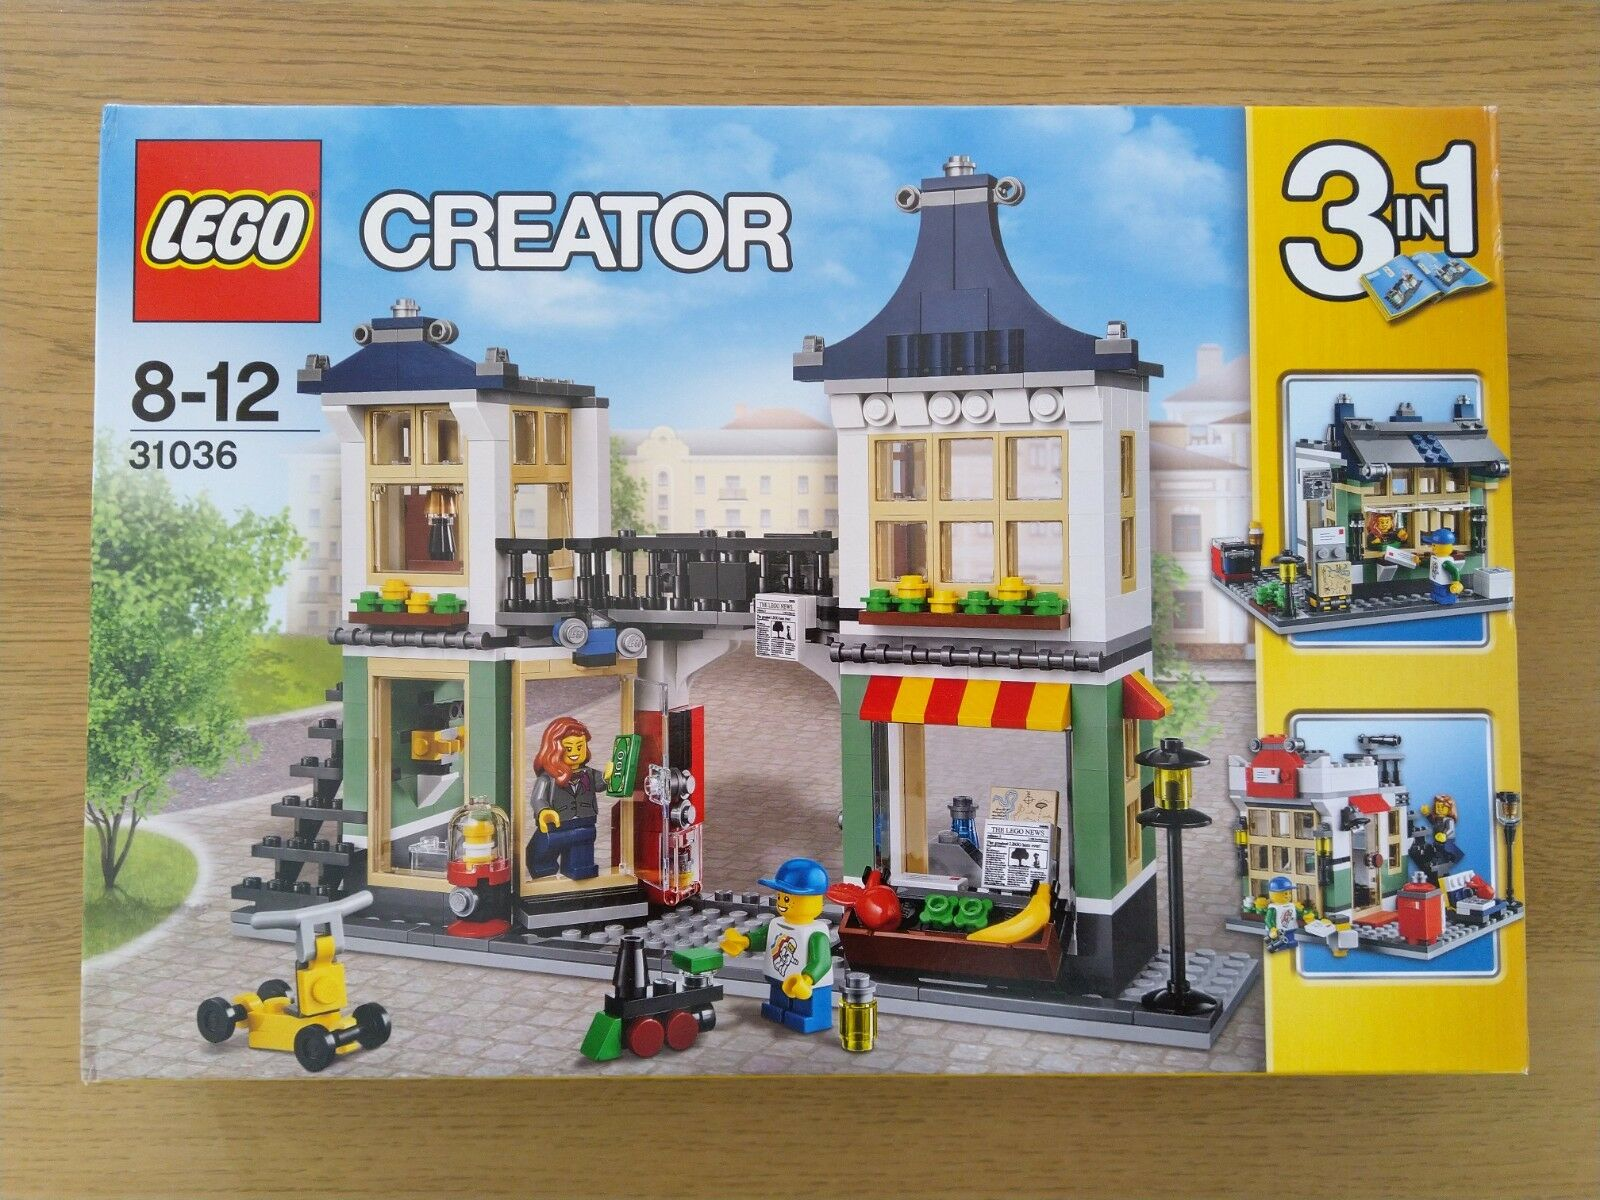 Lego Creator 31036 - 3 in 1 Set - Toy and Grocery Shop - Brand New Sealed